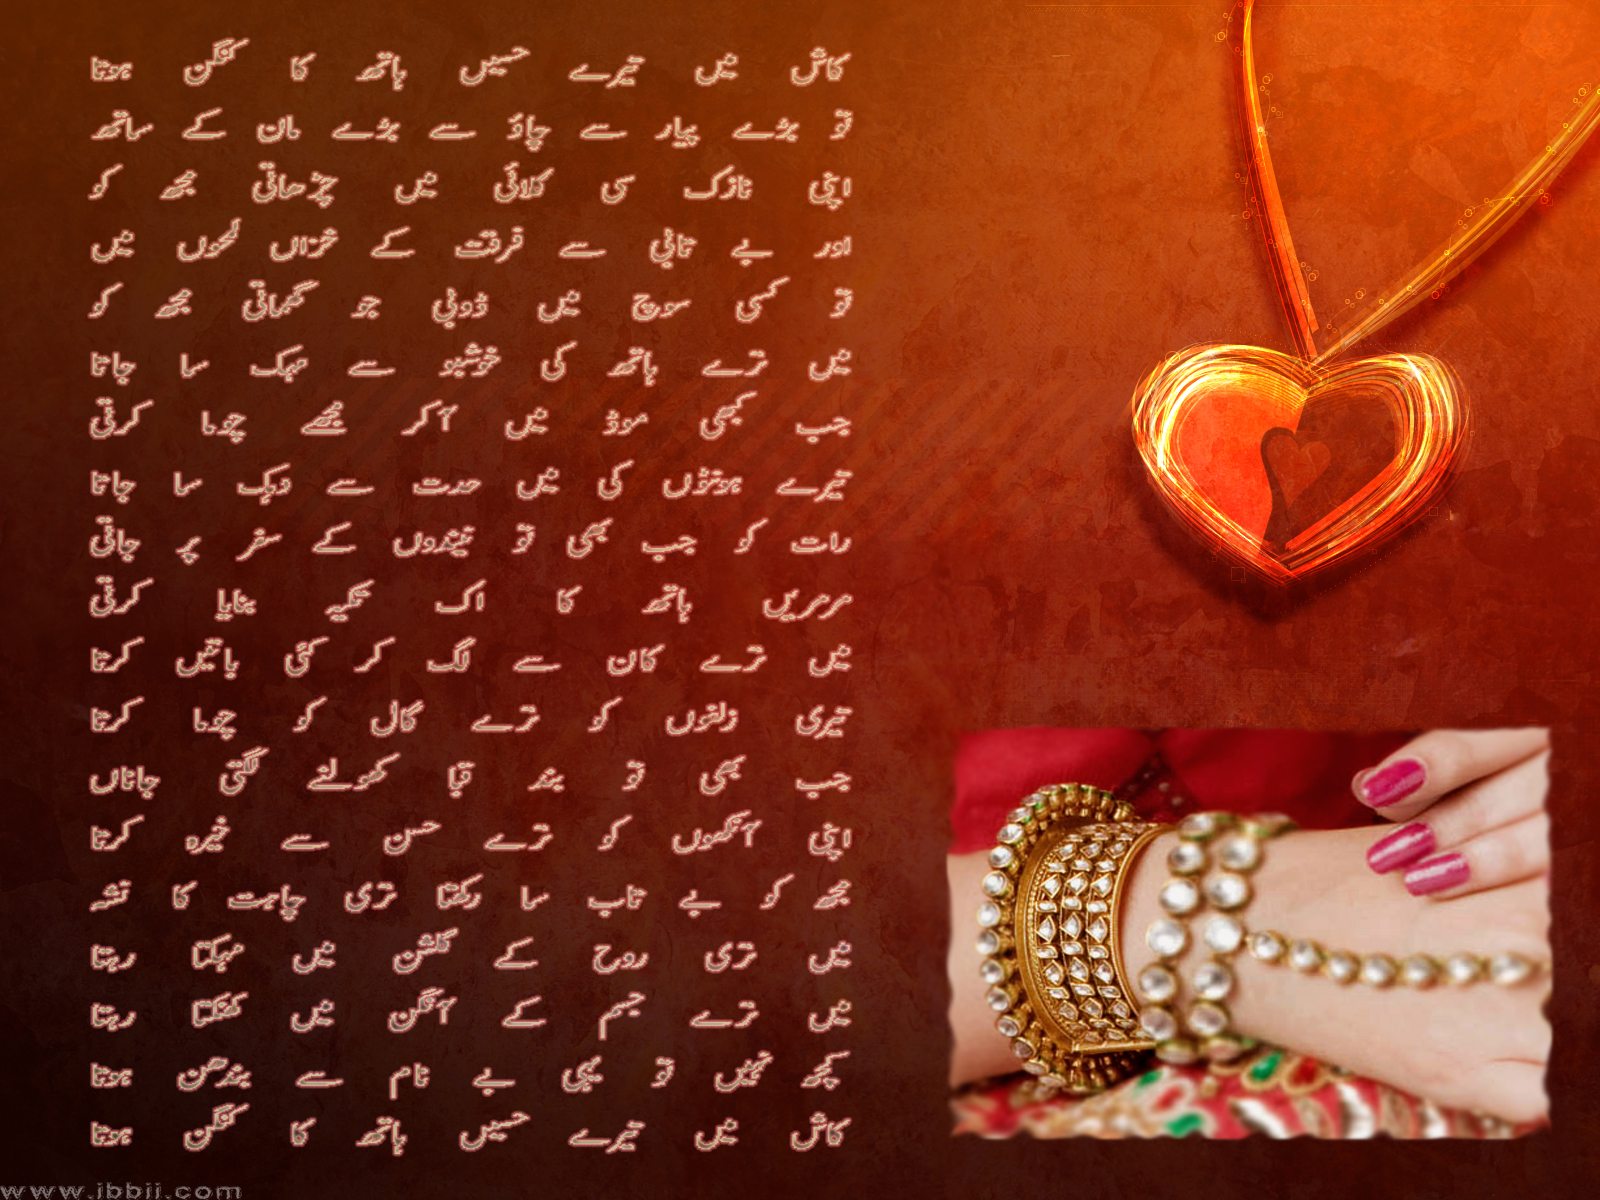 Beautiful Urdu Poetry wallpaper 1600x1200